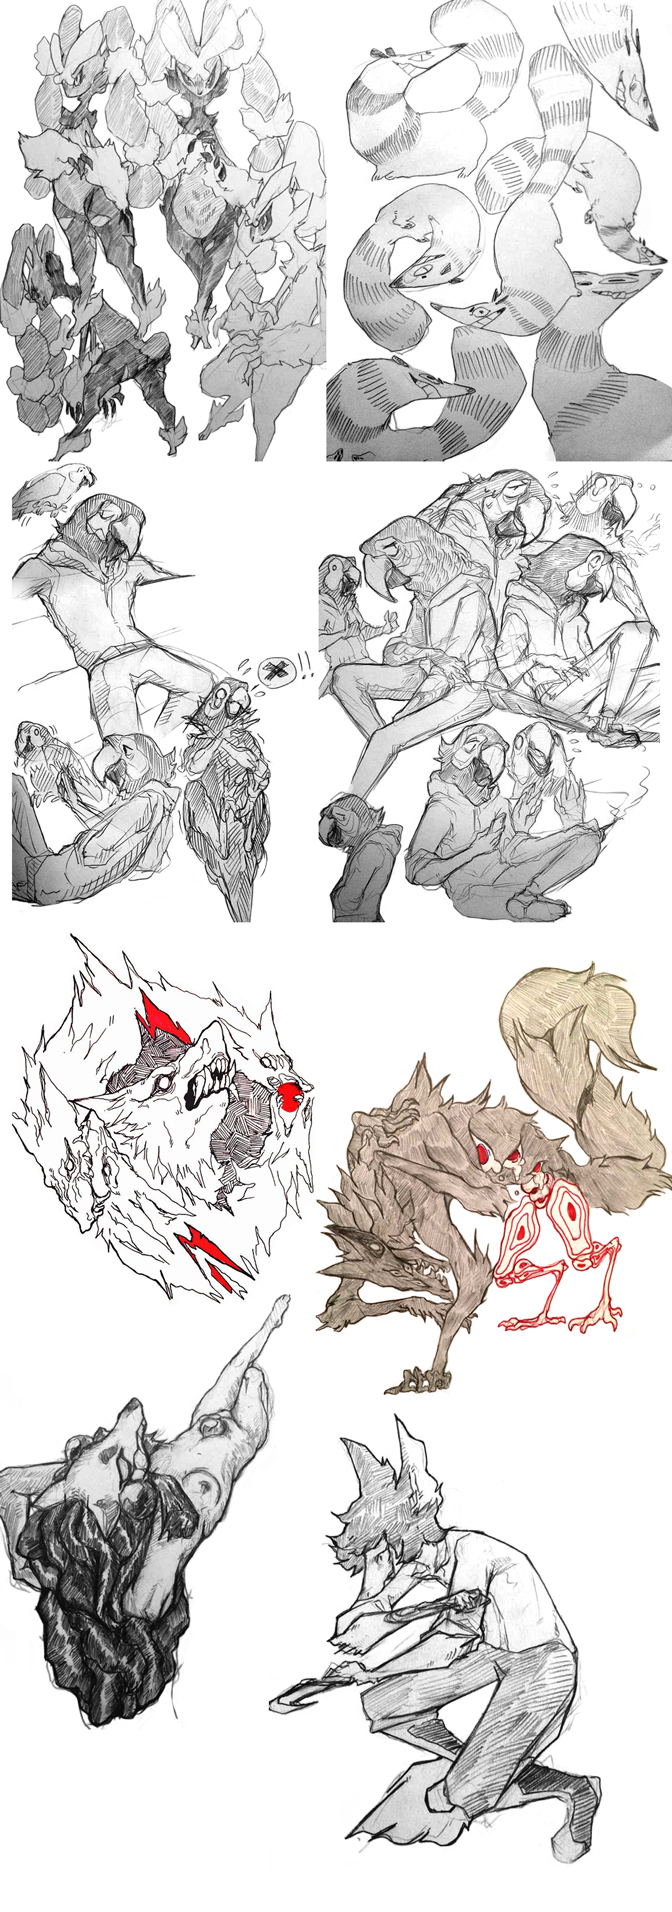 Most recent image: sketch dump